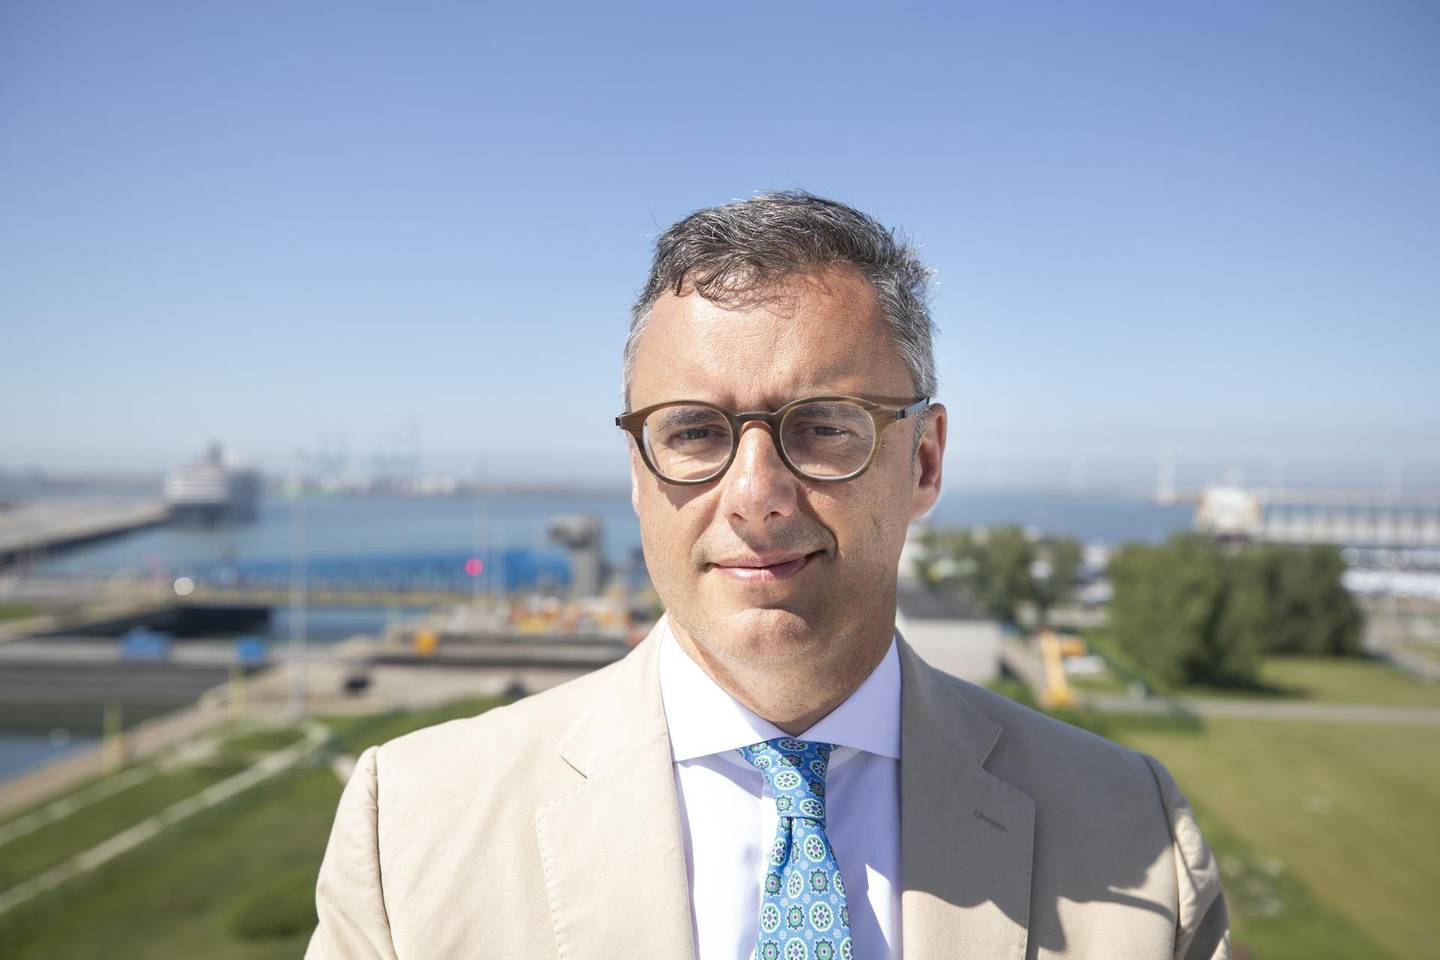 Joachim Coens, chief executive officer of the Port of Zeebrugge, poses for a photograph following an interview in Zeebrugge, Belgium, on Monday, May 7, 2018. With Brexit due in 10 months, Zeebrugge embodies the repeated warnings by the U.K.'s EU partners that its departure from the bloc is a lose-lose move by adding bureaucracy for businesses and costs for consumers. Photographer: Jasper Juinen/Bloomberg